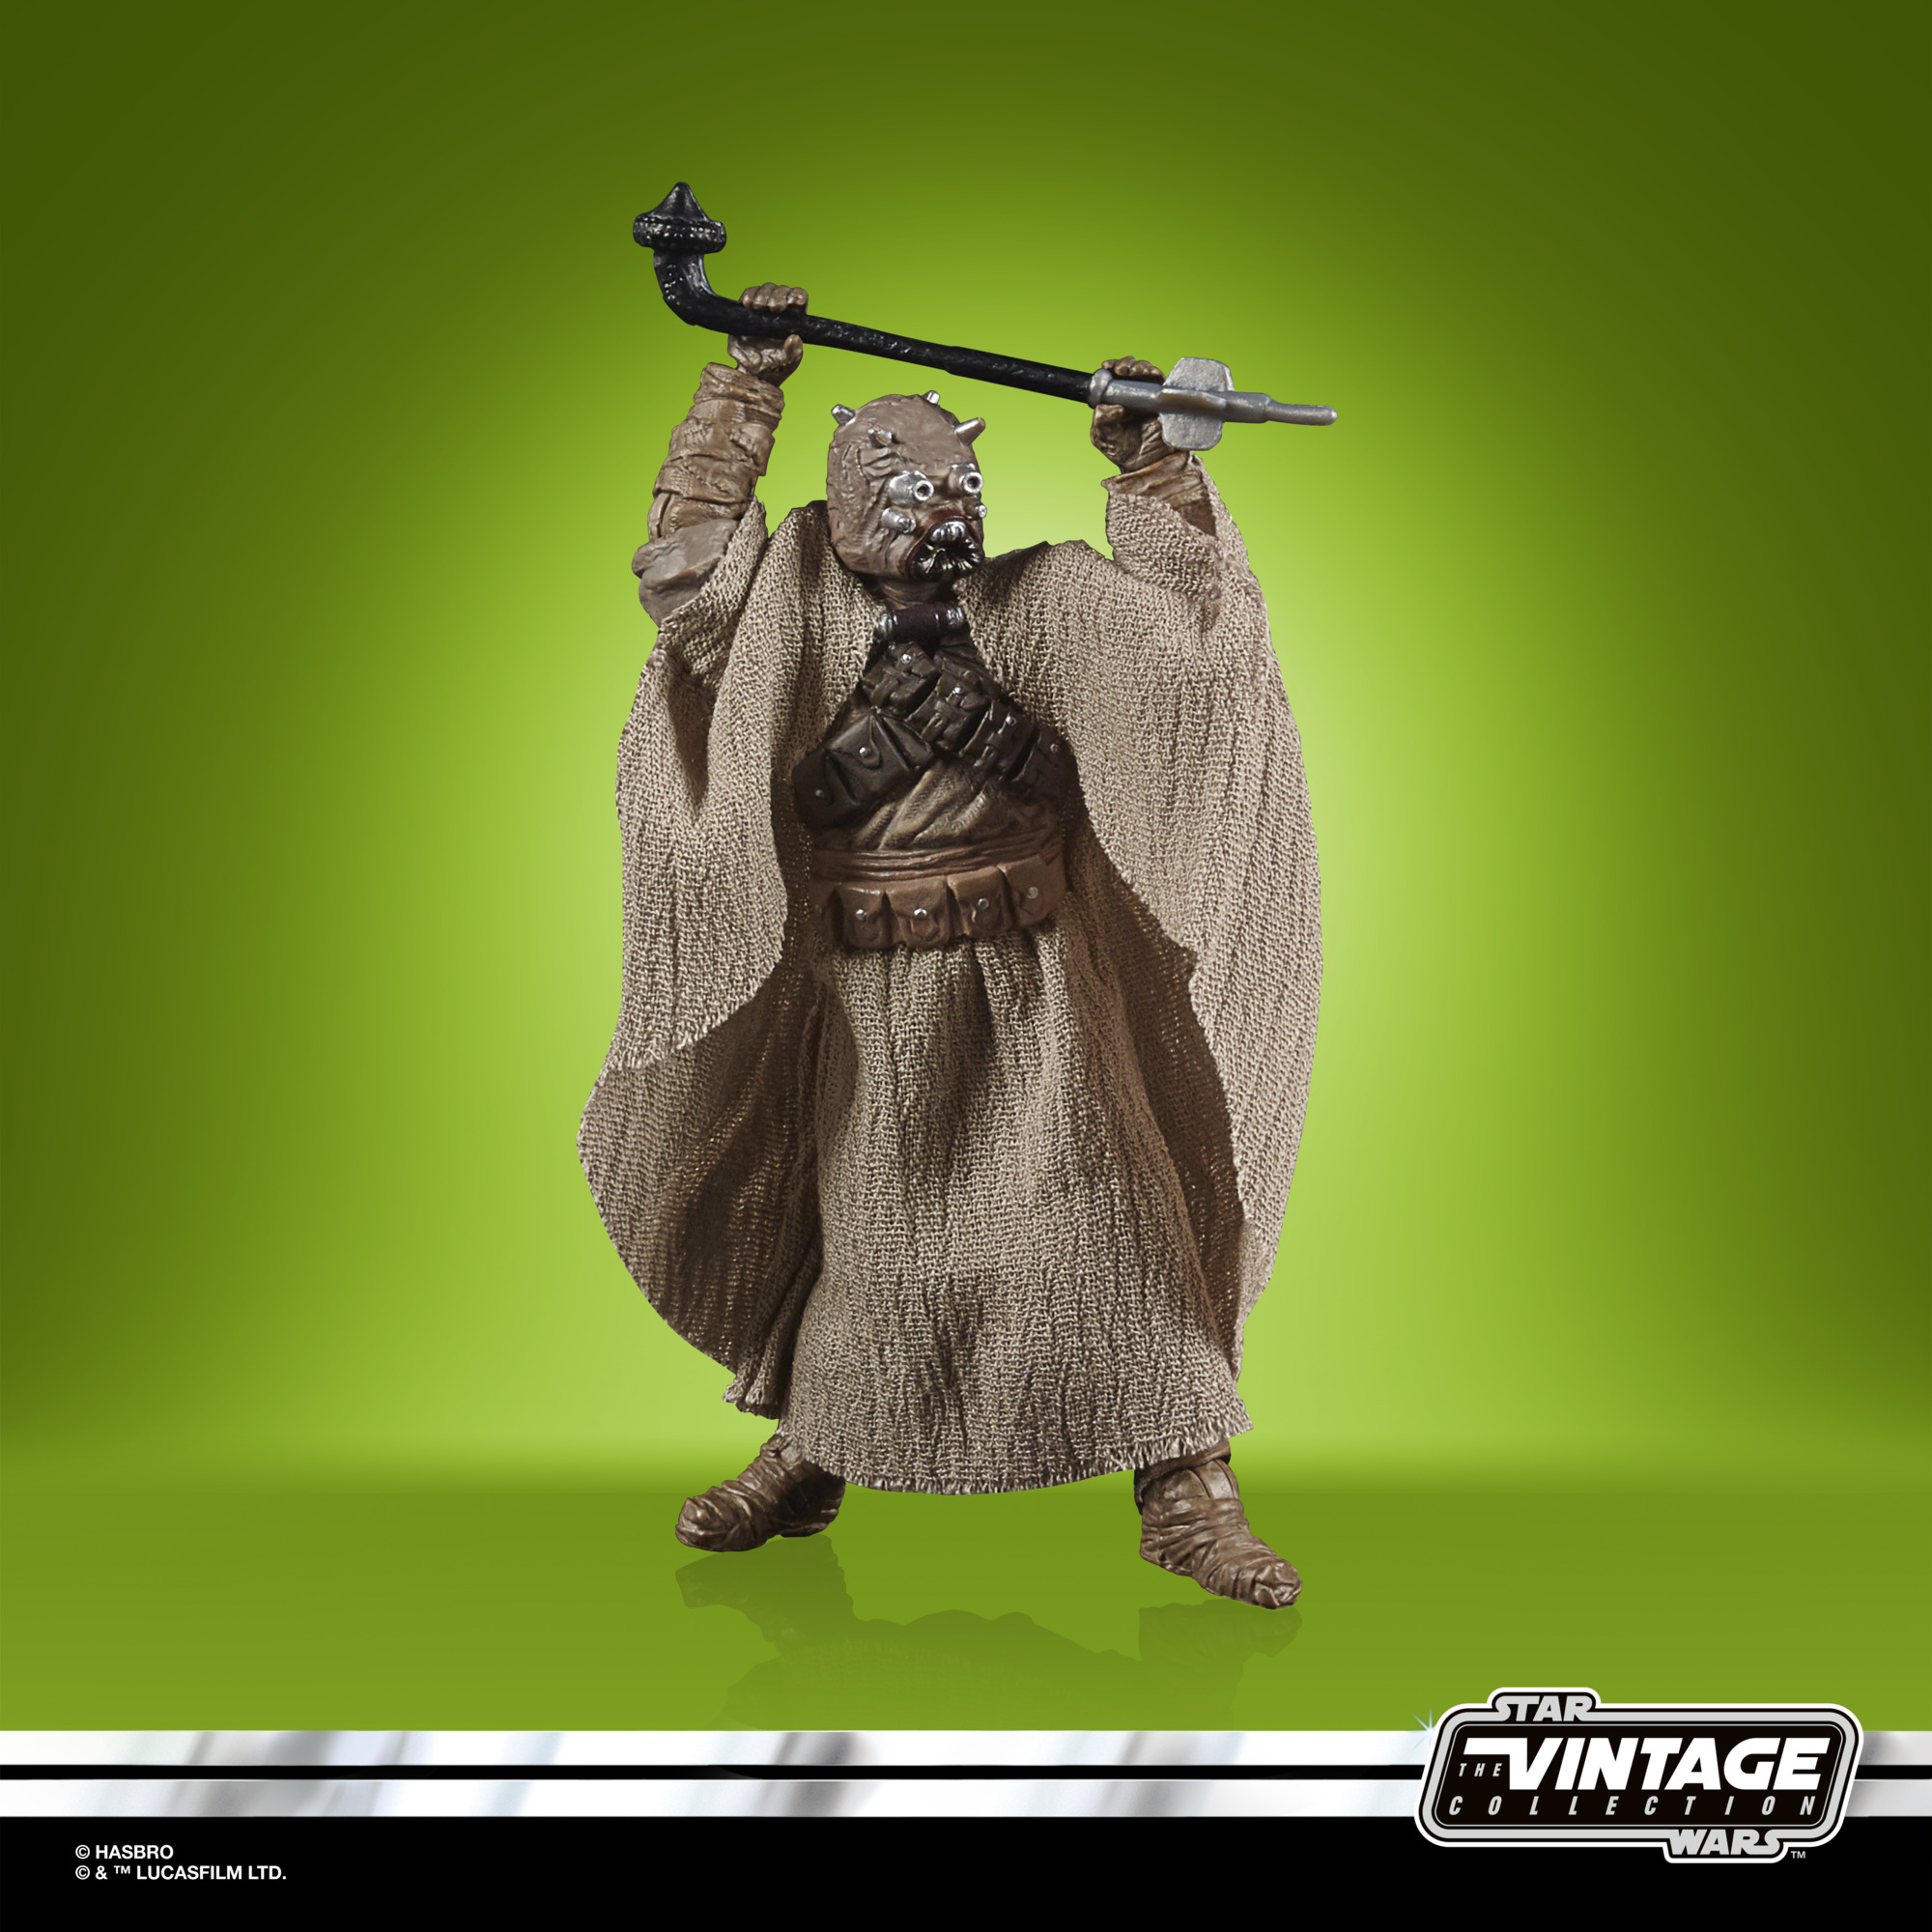 Star Wars The Vintage Collection Tusken Raider LUCASFILM 50TH ANNIVERSARY F31185L00